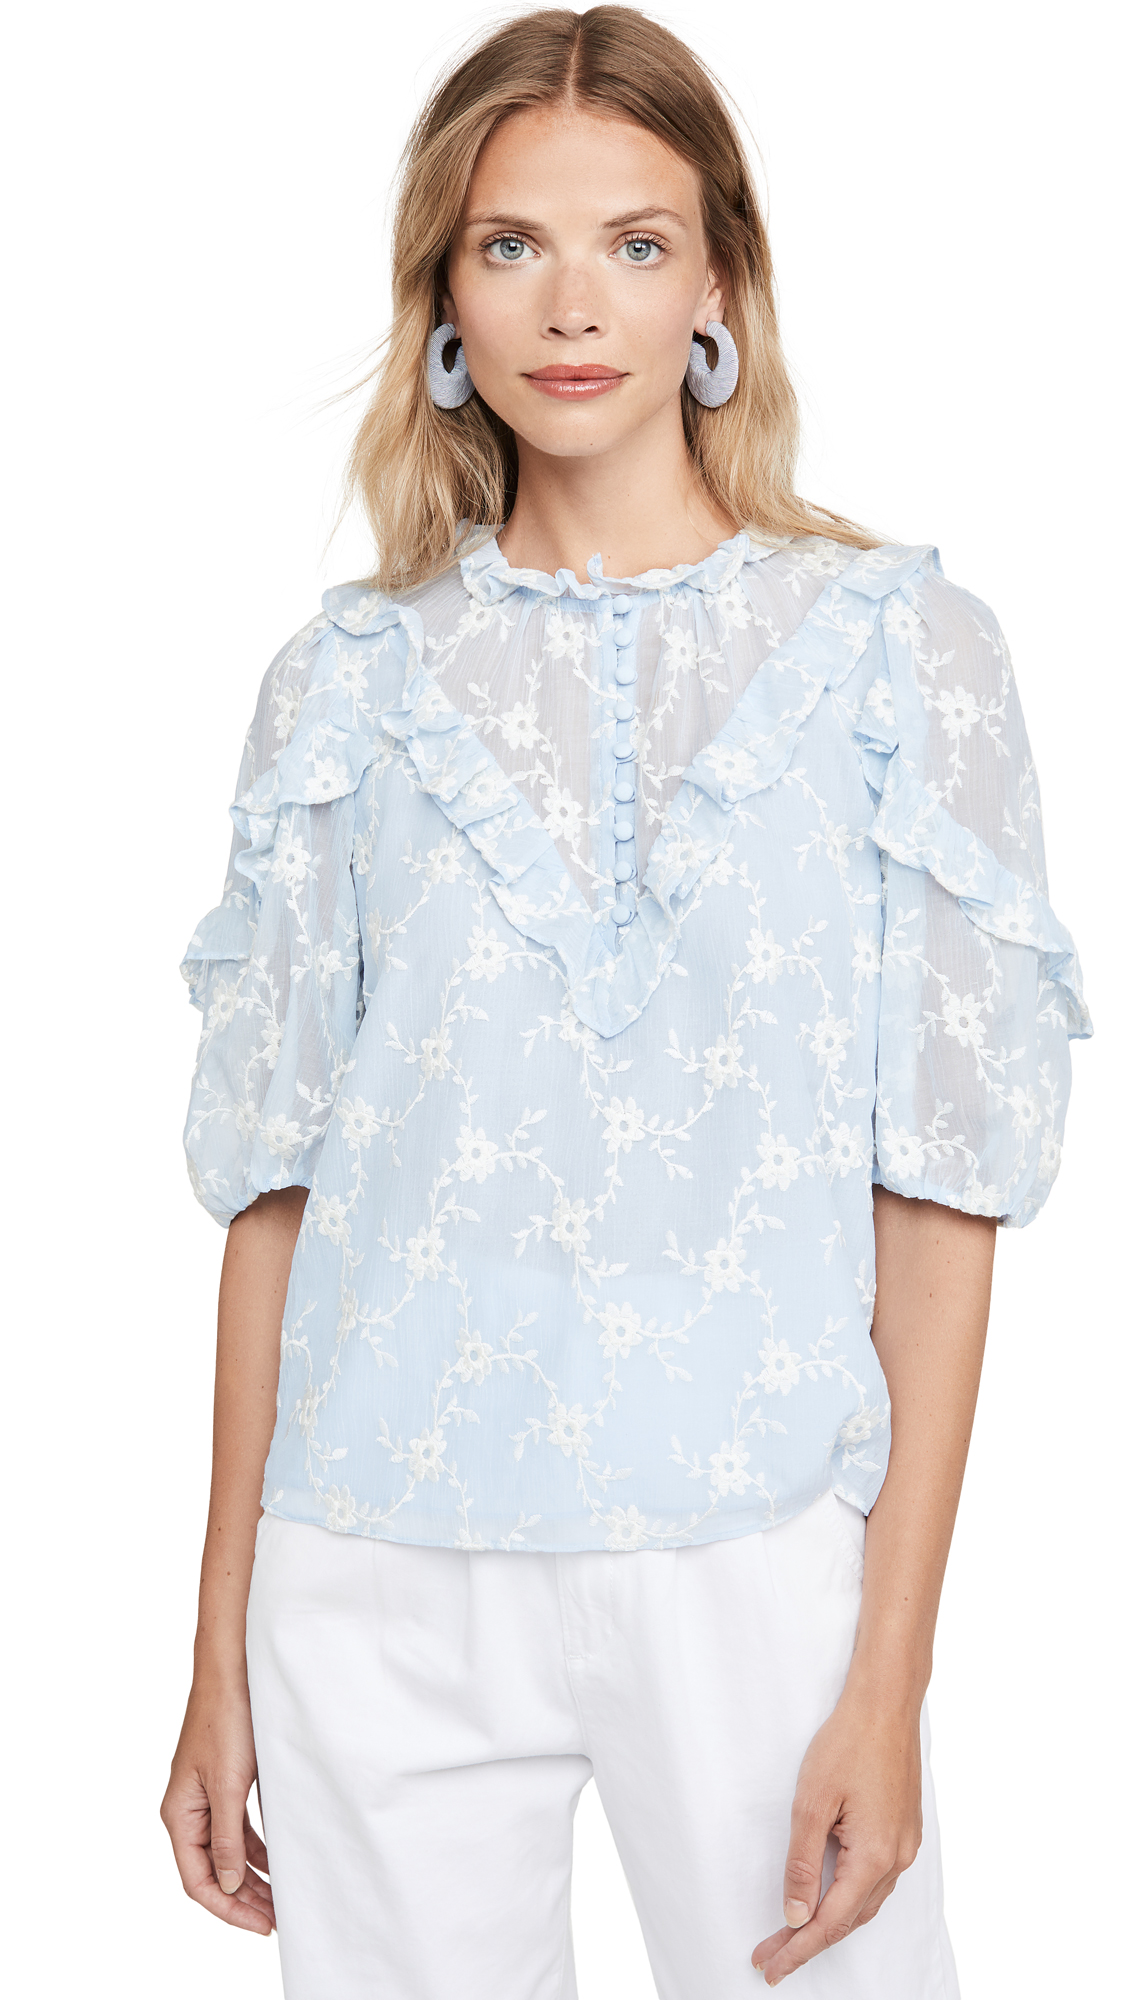 Rebecca Taylor Short Sleeve Vine Embroidery Top - 40% Off Sale